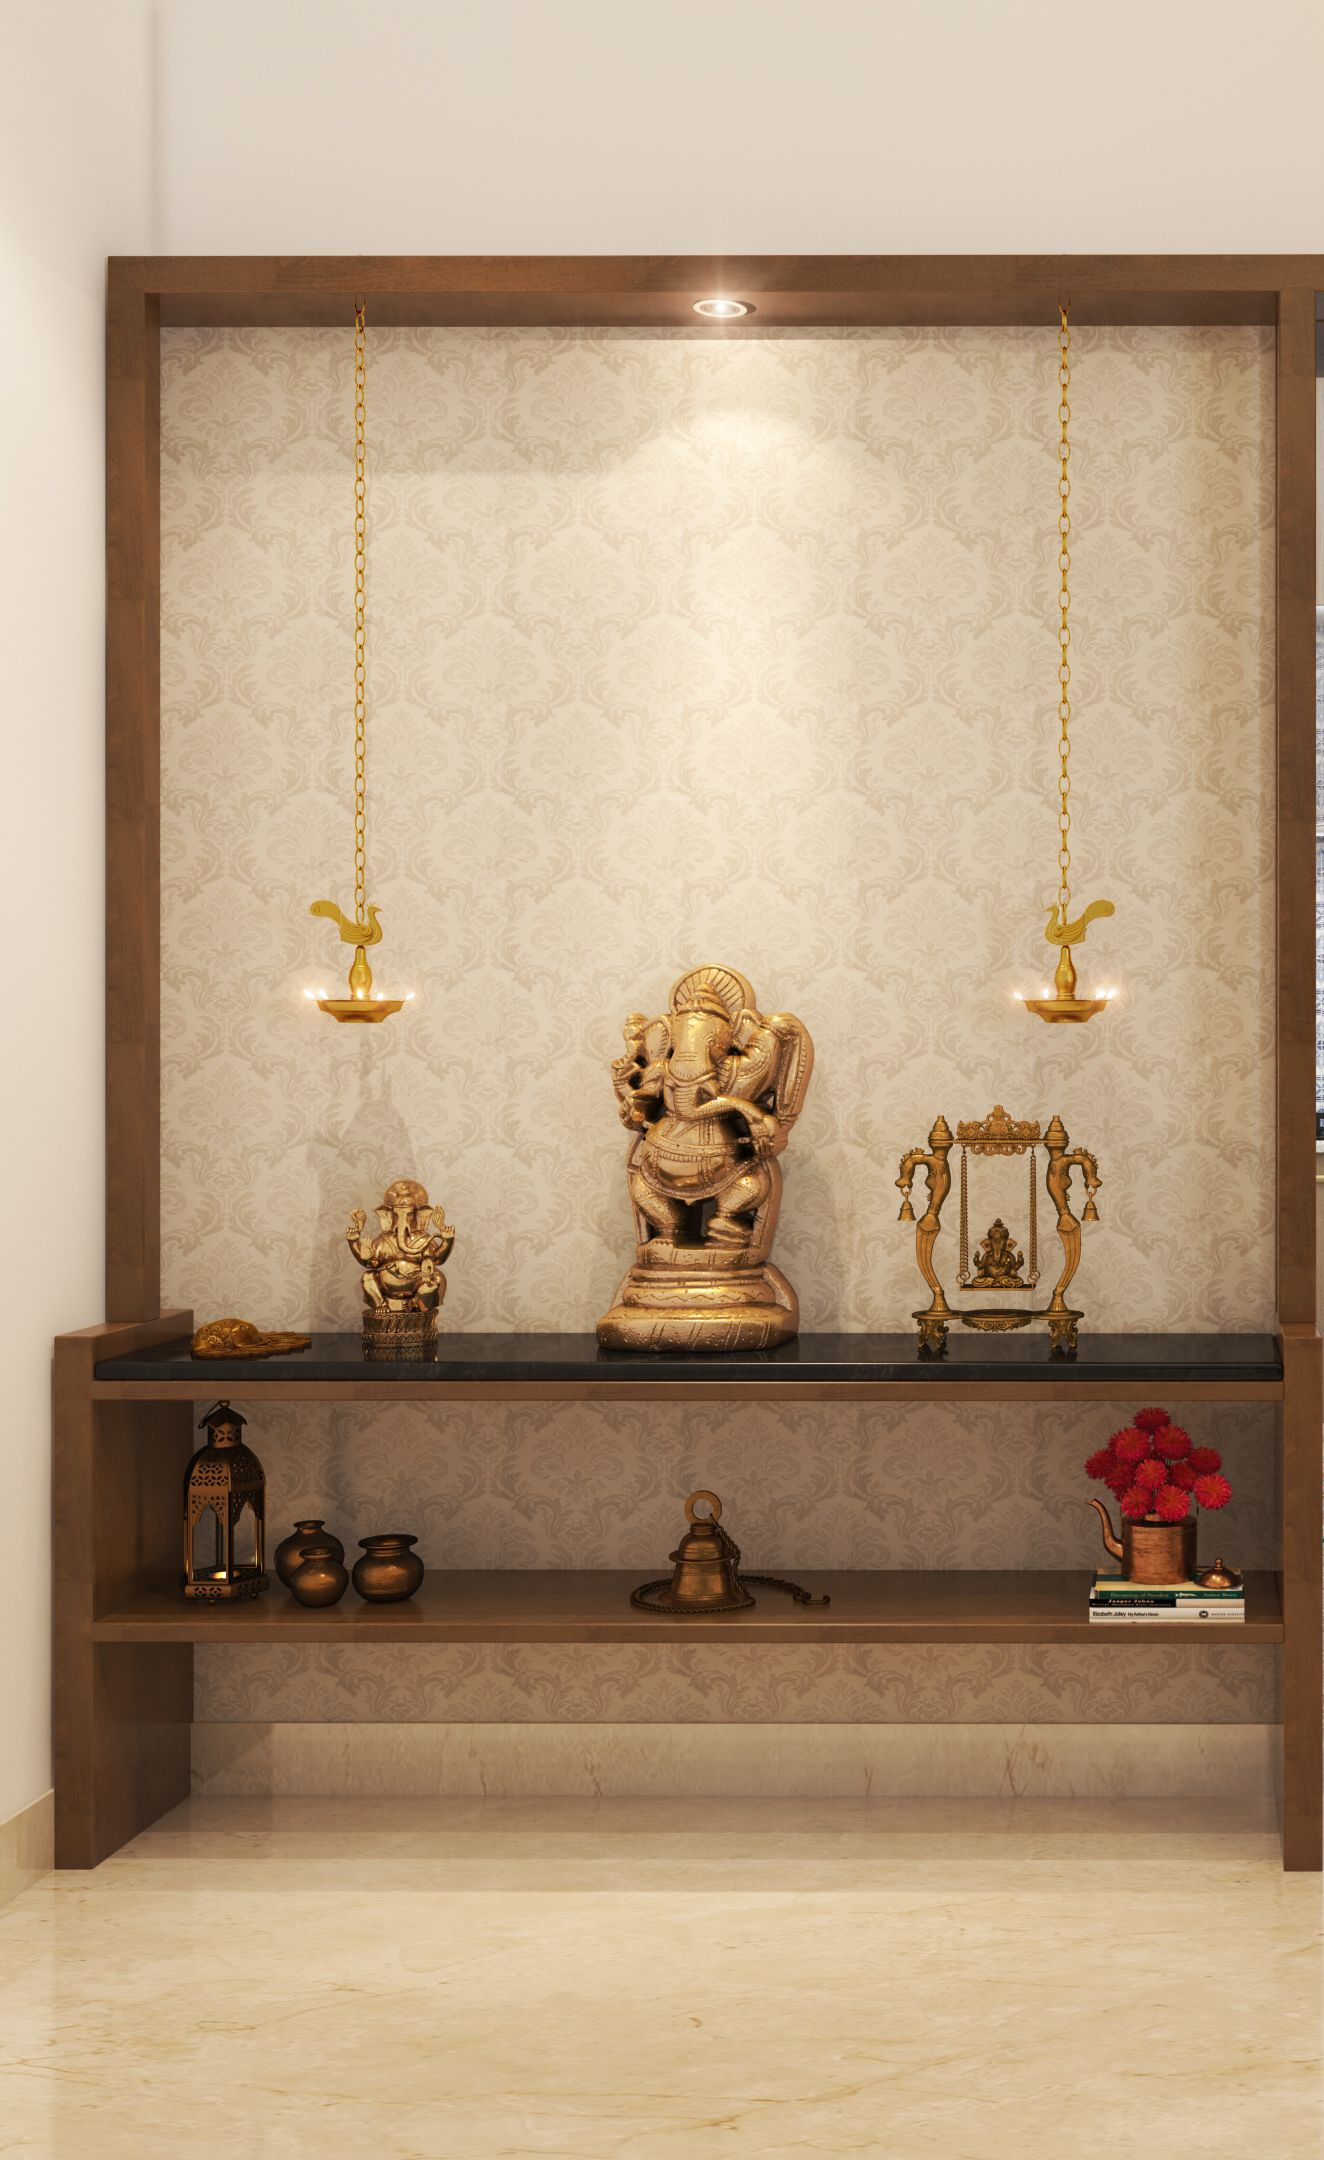 Pooja Room Design For Home: 4 Classic, Easily Available Materials For Pooja Room